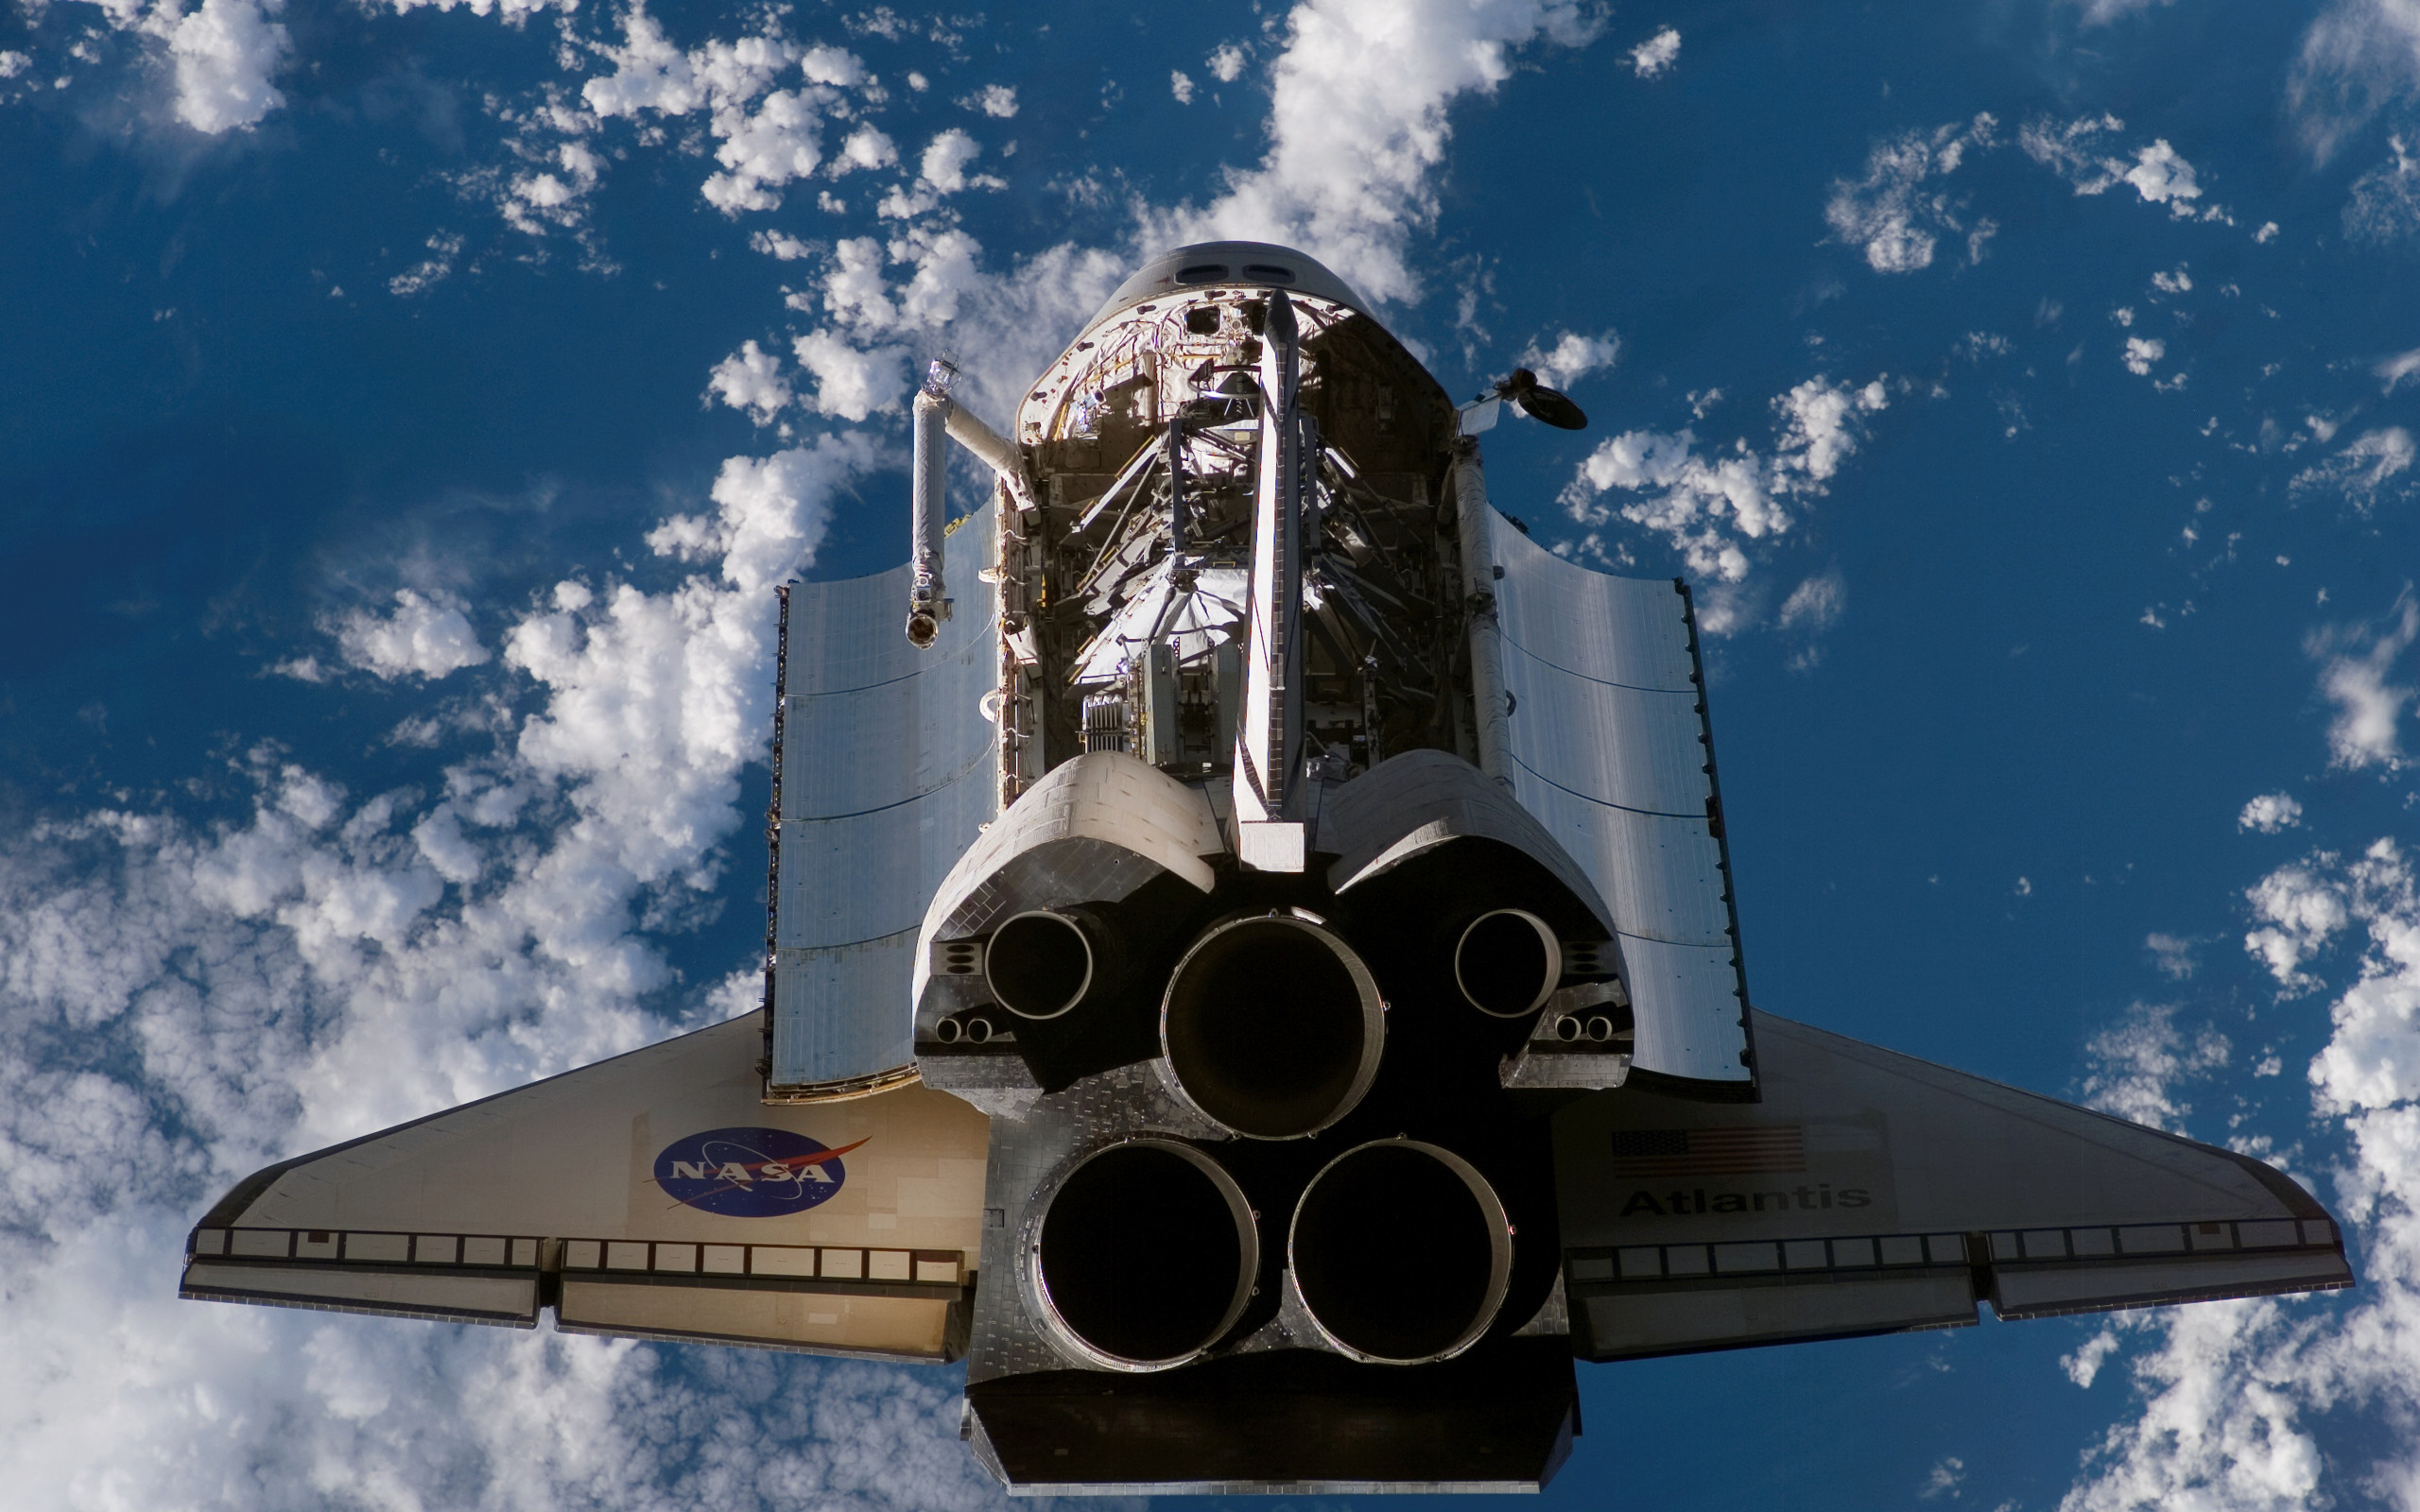 2560x1600 Space Shuttle Wallpapers Free